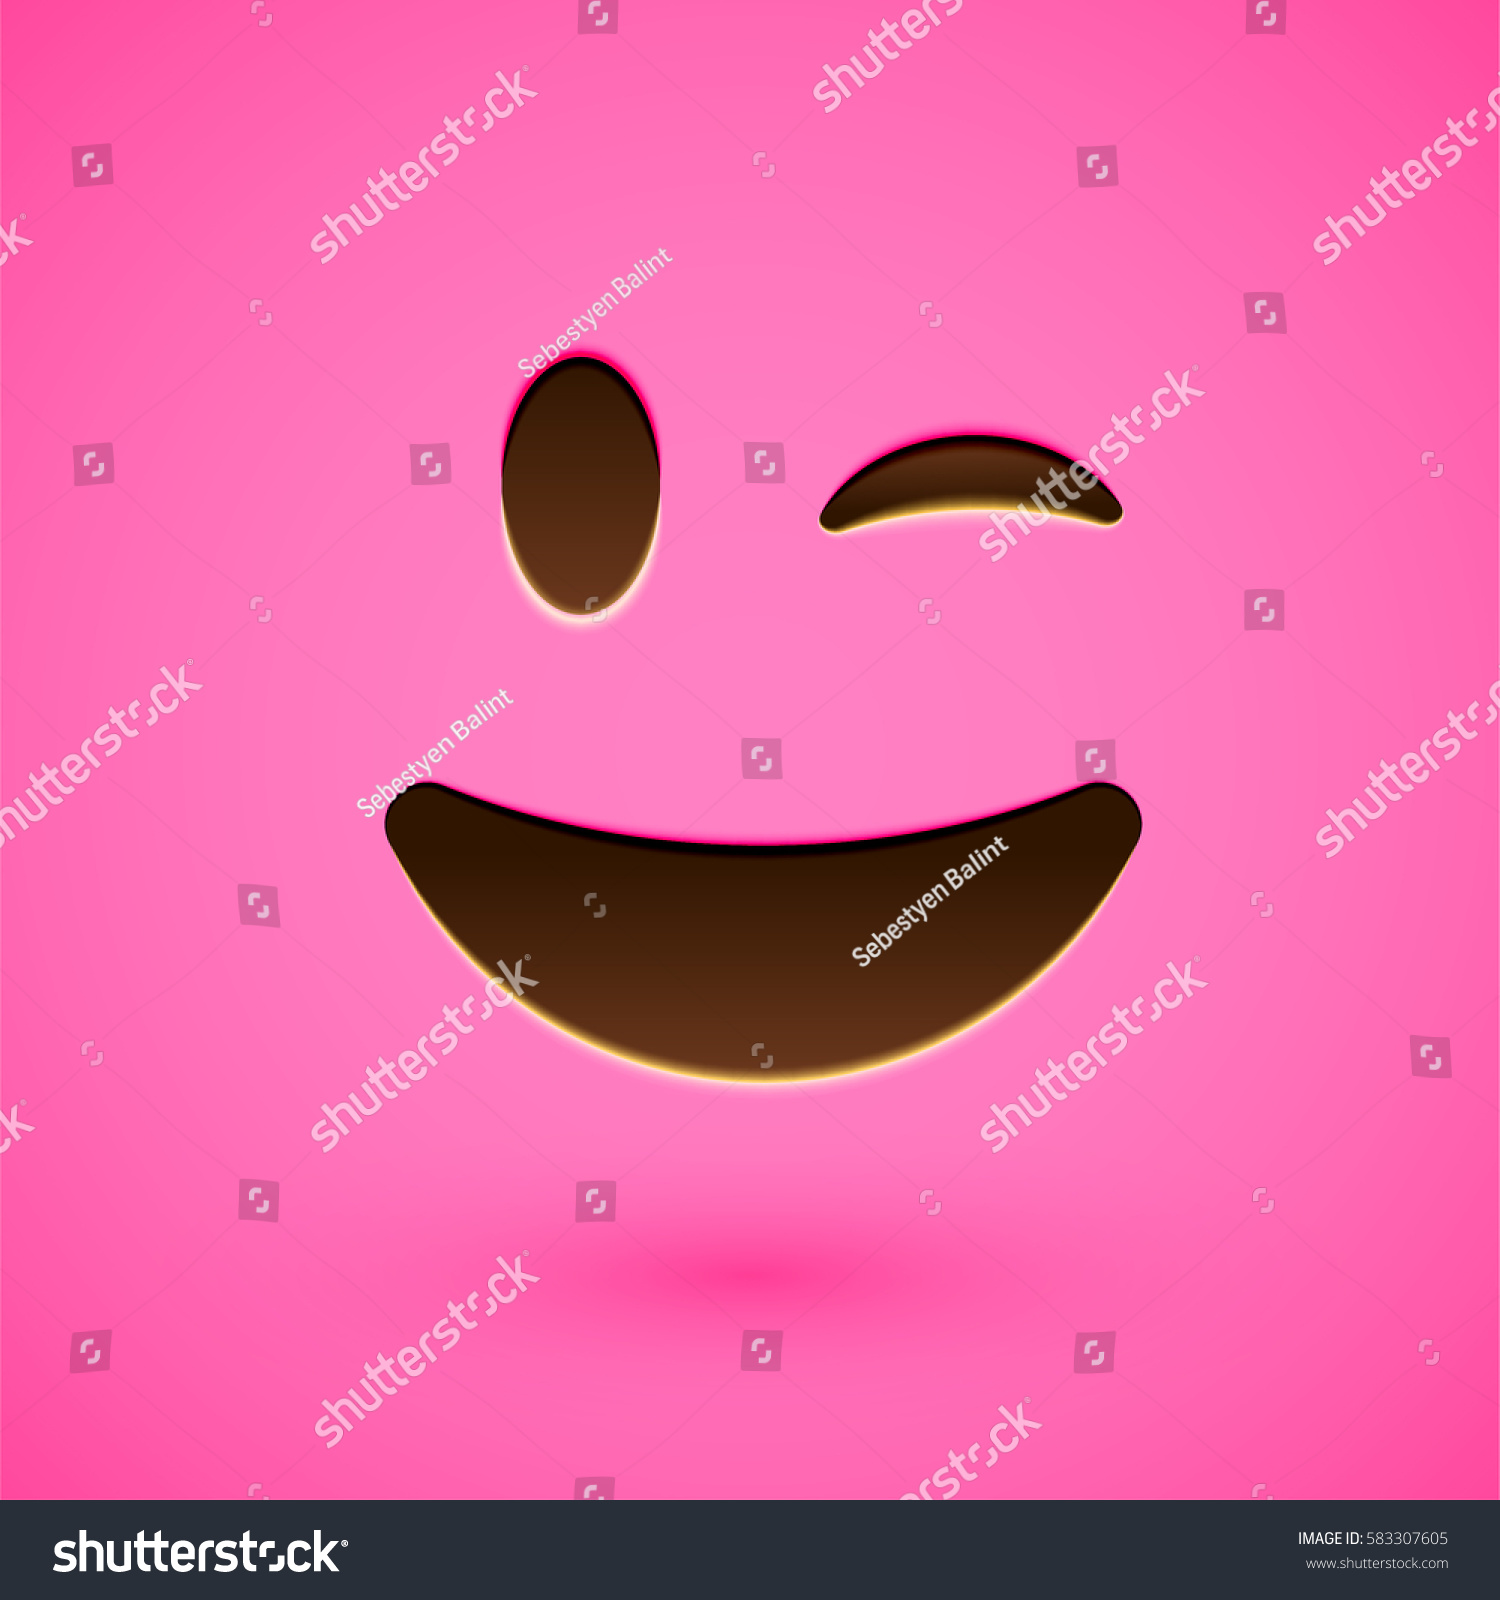 Clean And Shiny Smiley Face Emoticon Vector Illustration Ez Canvas